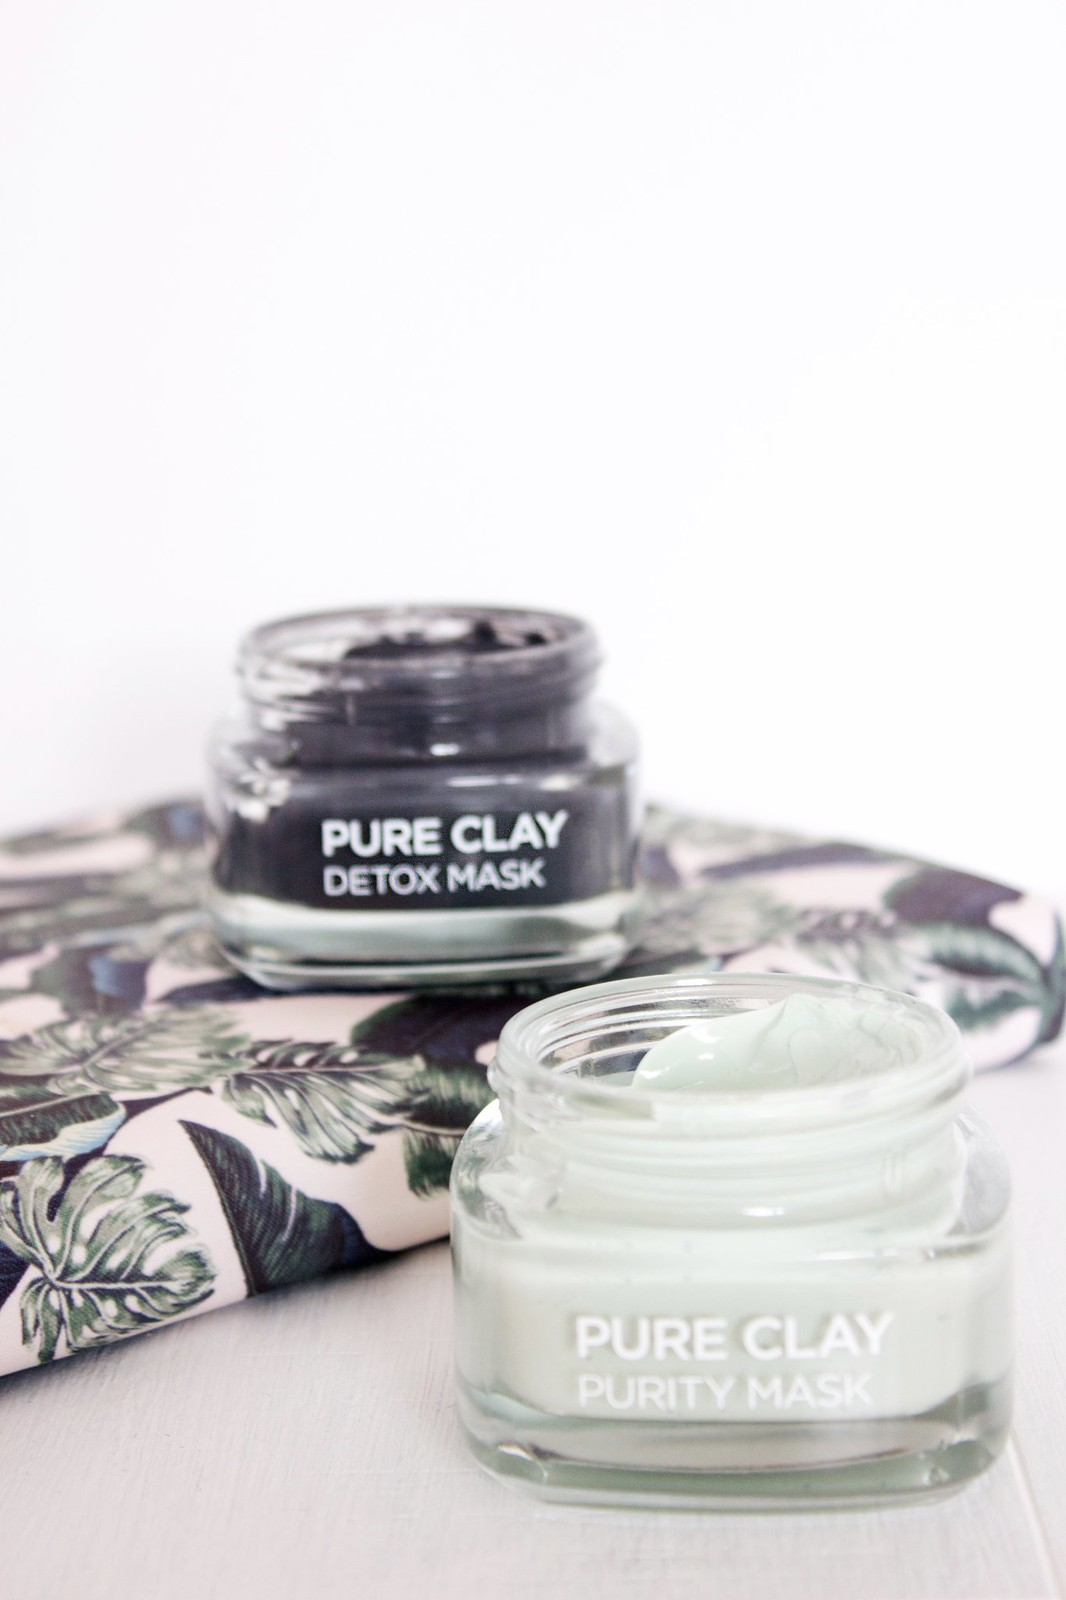 L'Oreal Pure Clay Masks Review